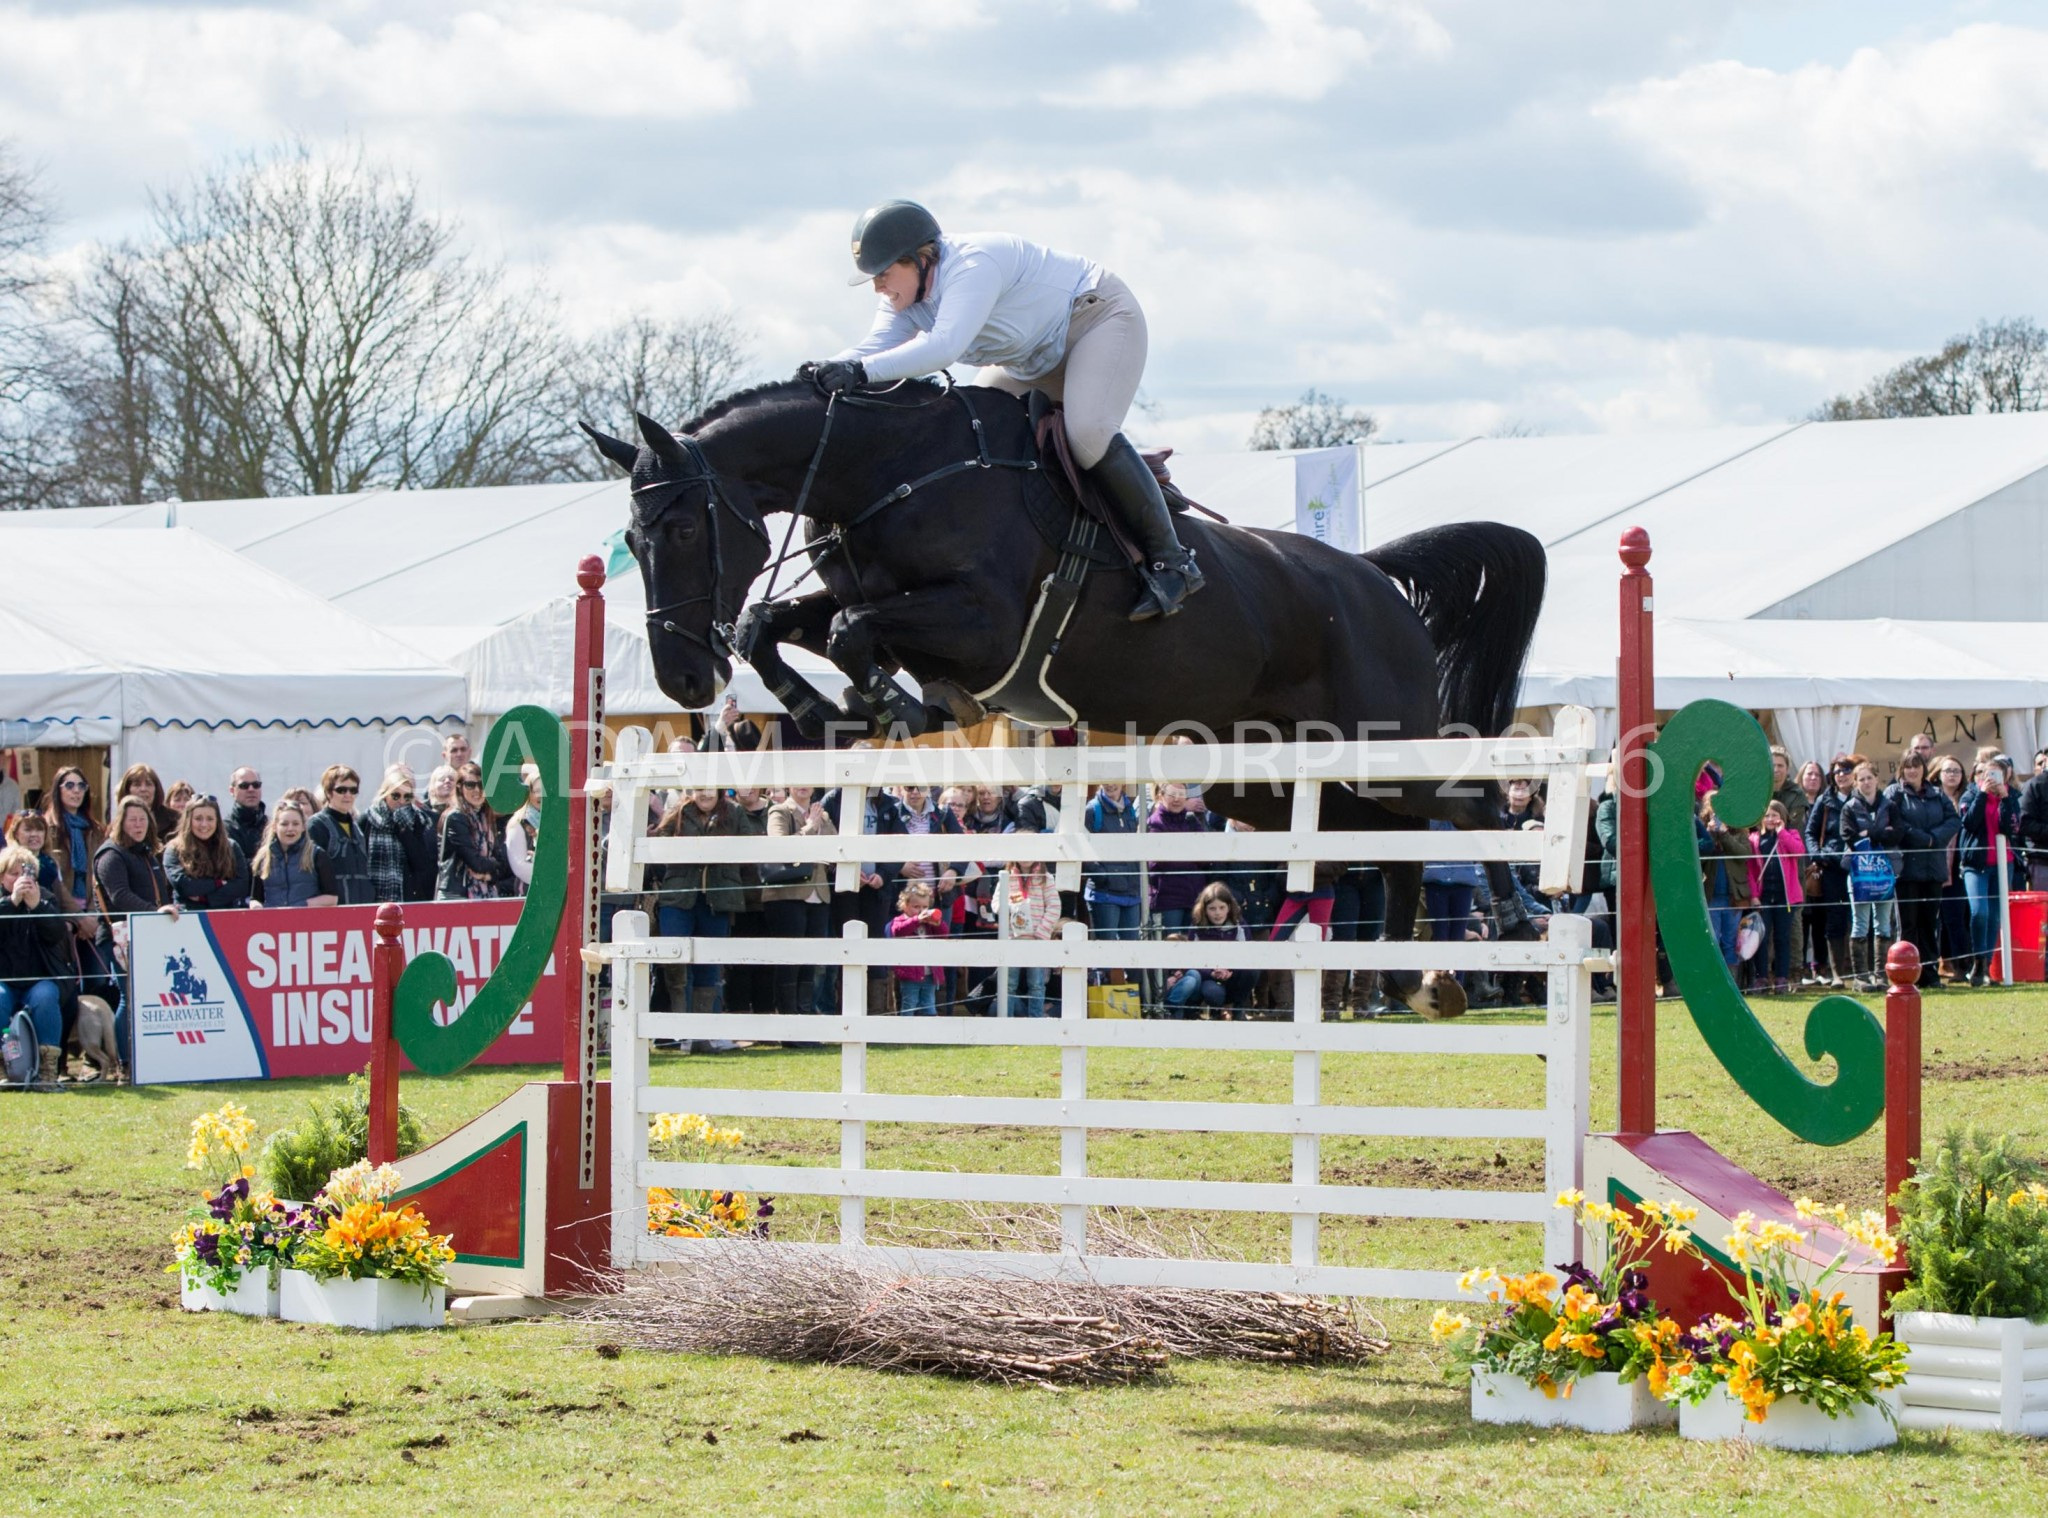 Belton Gate Jumping - From snow to glorious sunshine, 2016's Belton had it all…